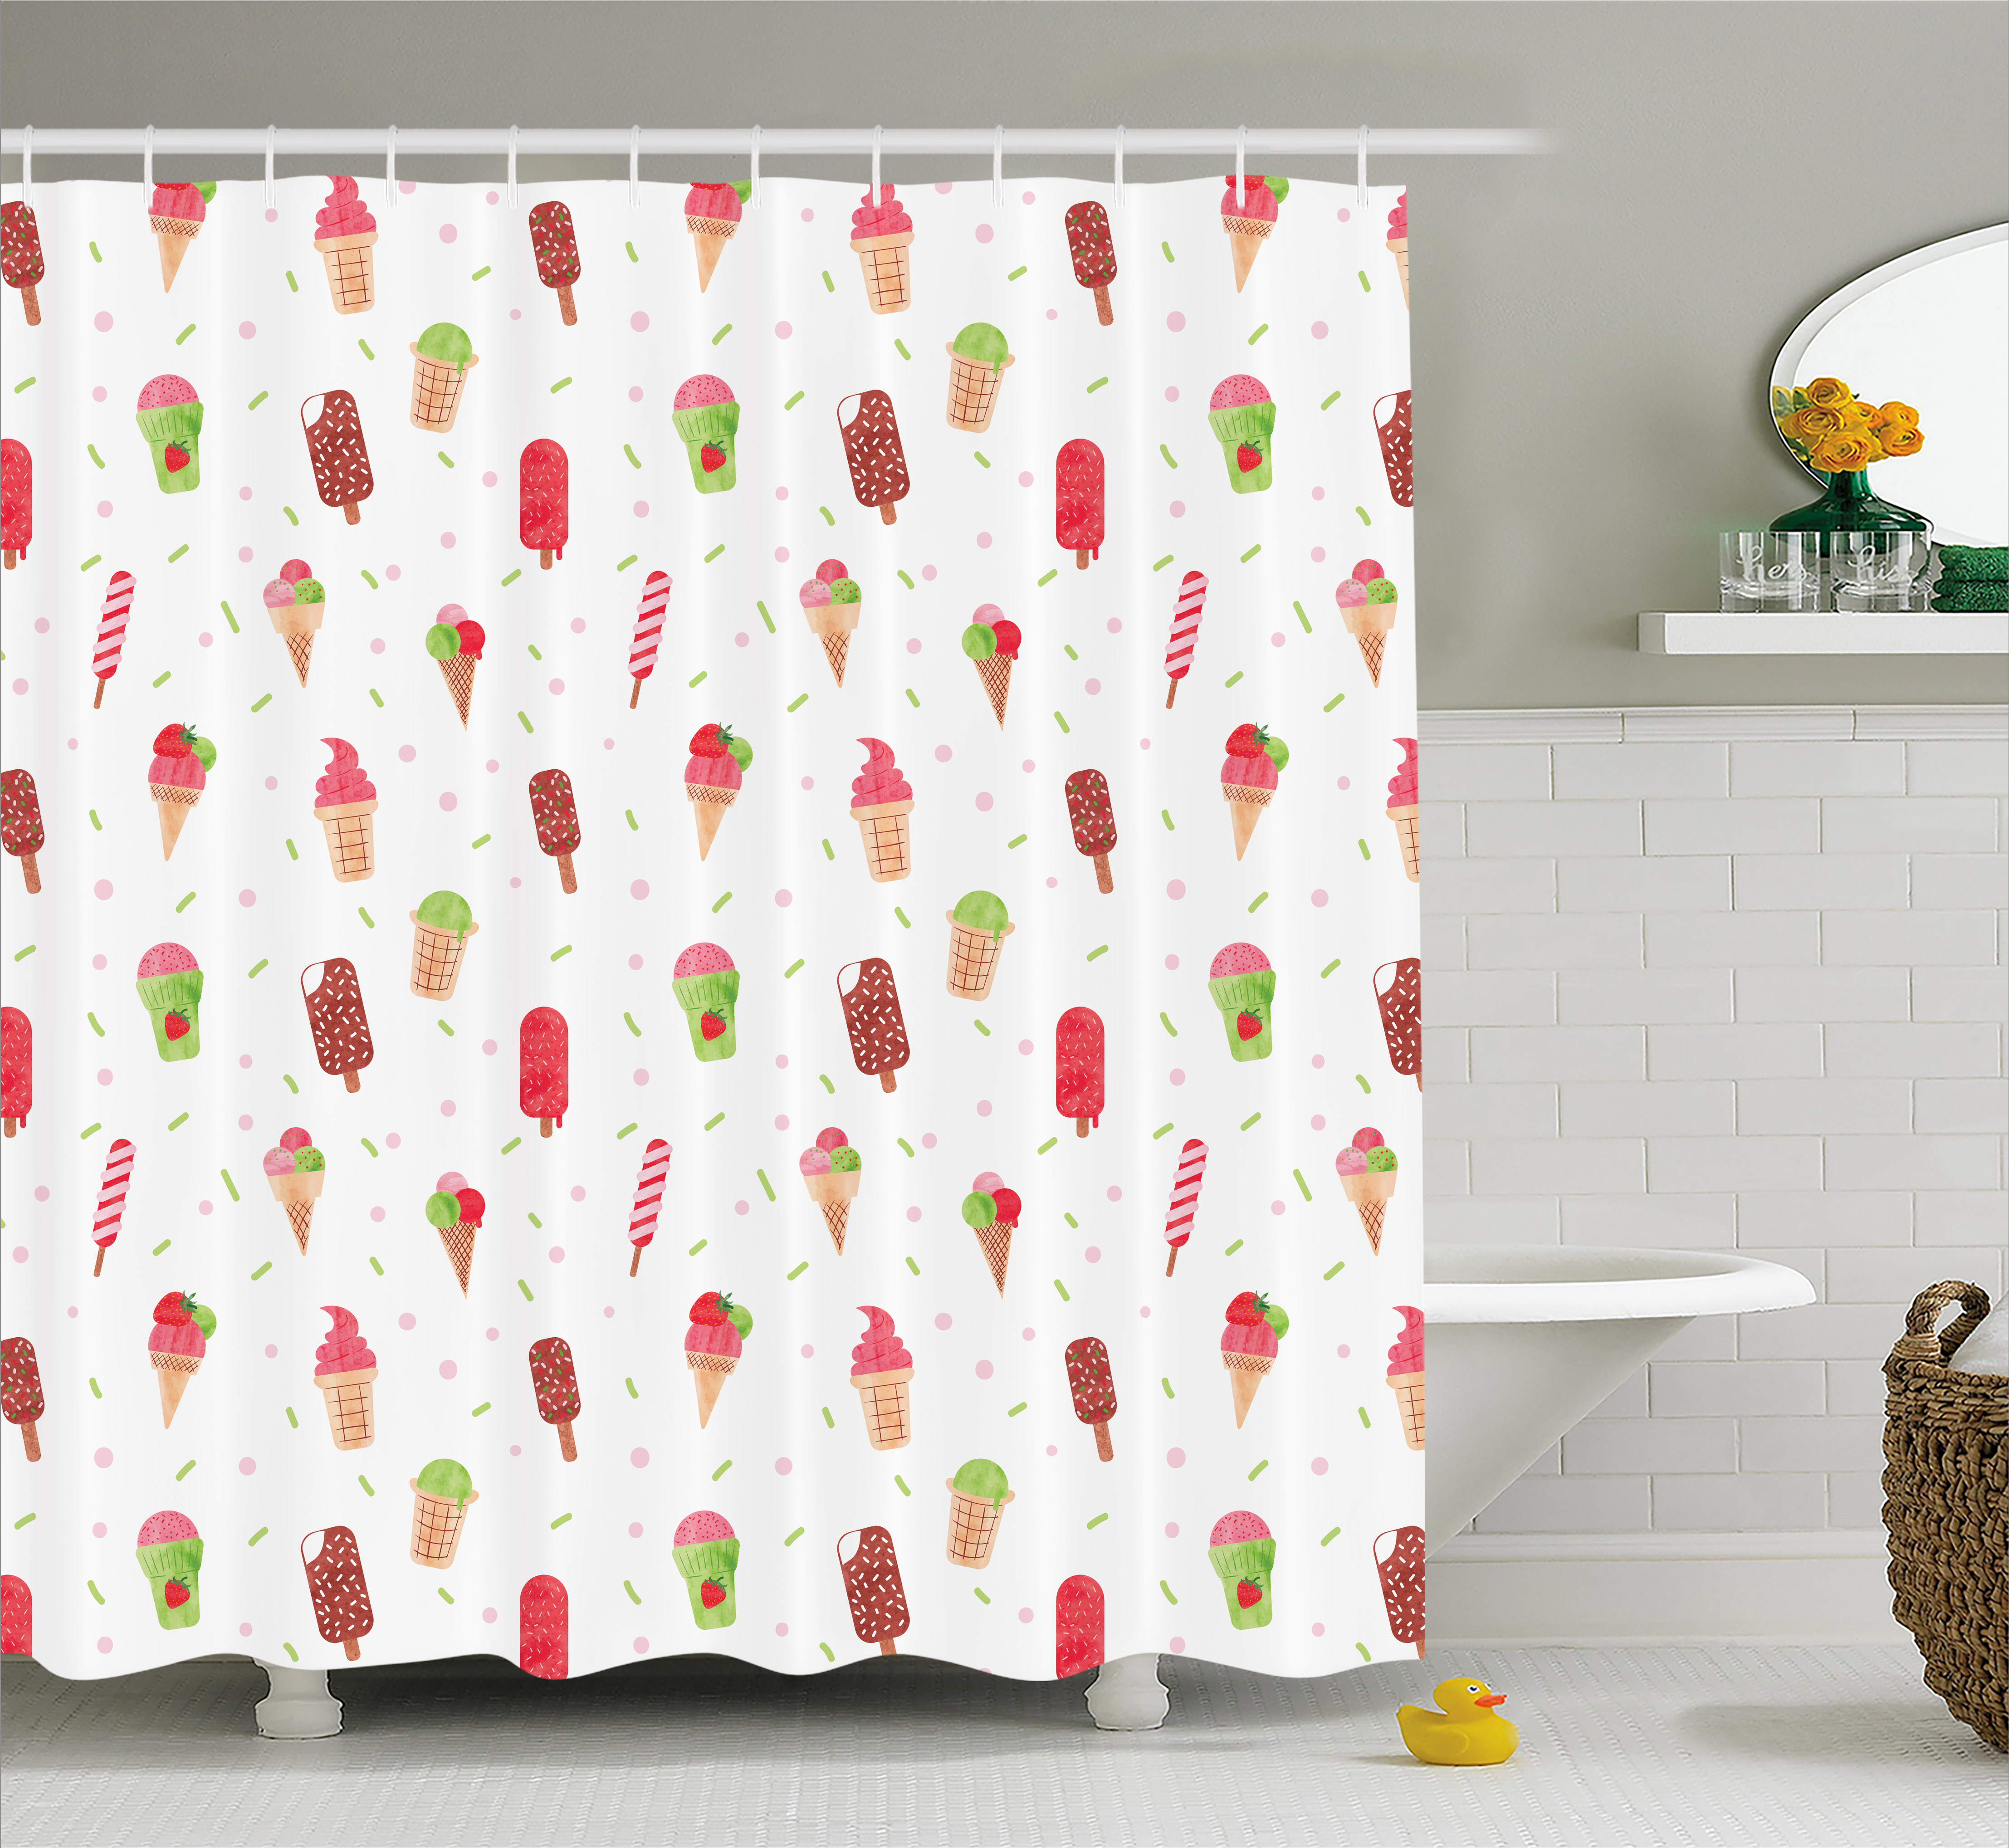 Ice Cream Shower Curtain, Summertime Inspired Watercolor Pattern with Yummy Dessert Ice Lolly and Cone, Fabric Bathroom Set with Hooks, 69W X 70L Inches, Multicolor, by Ambesonne